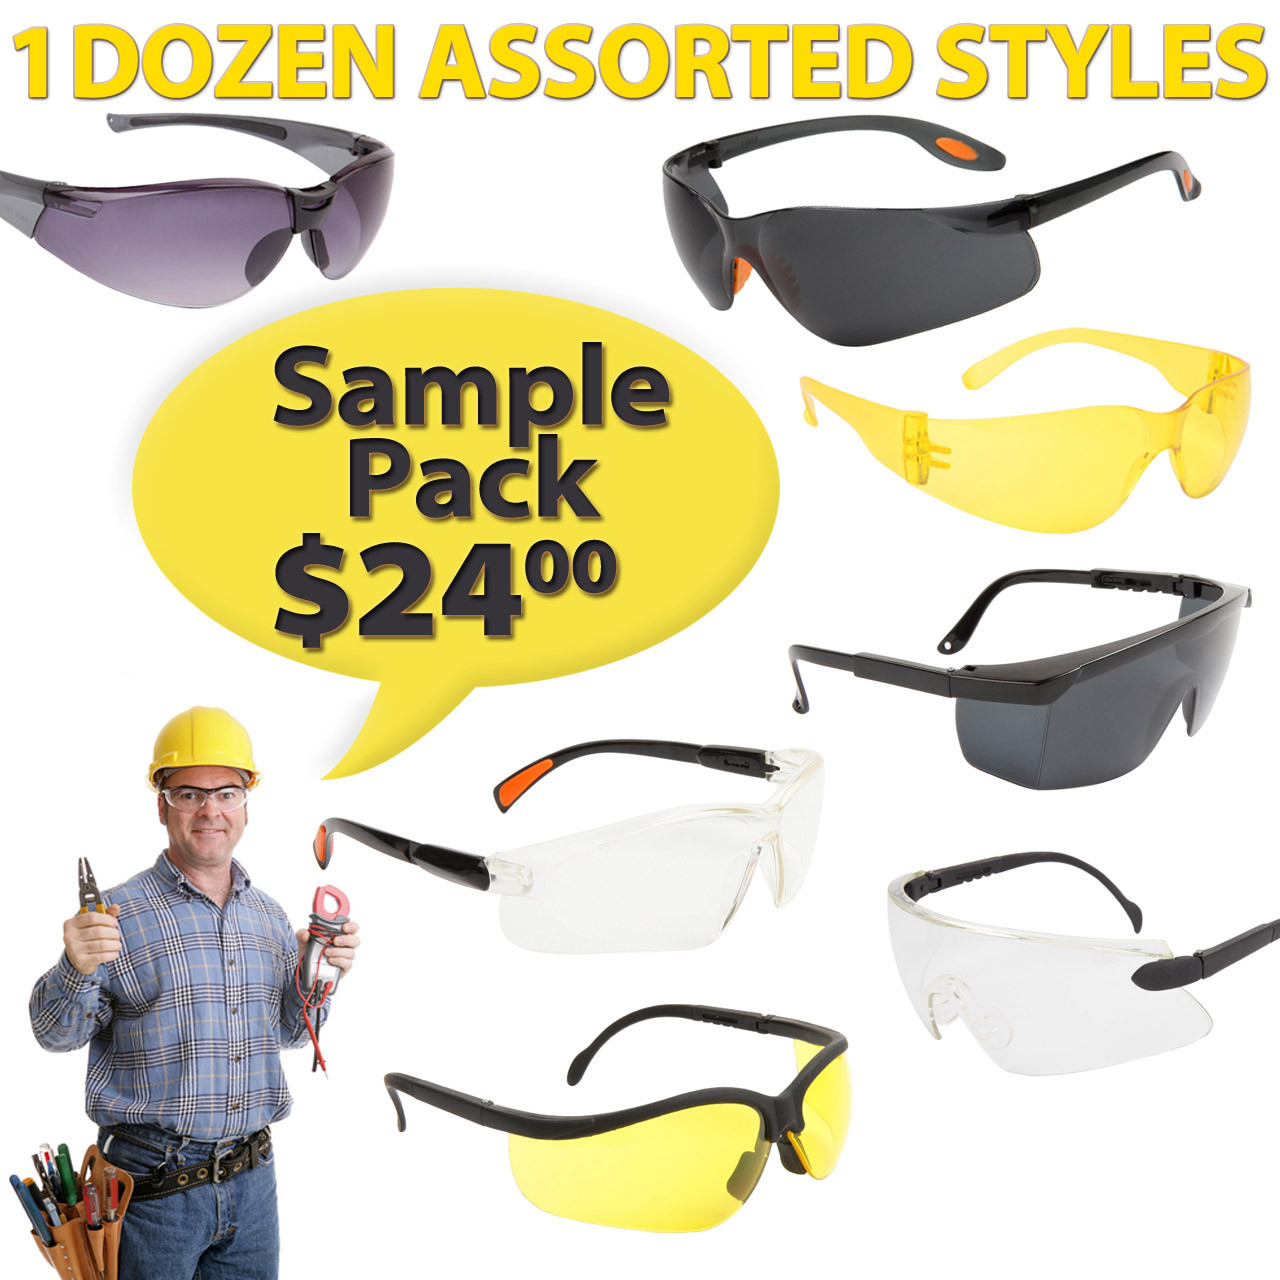 Safety Glasses Sample Pack ASG1 (Assorted Colors) (12 pcs.)